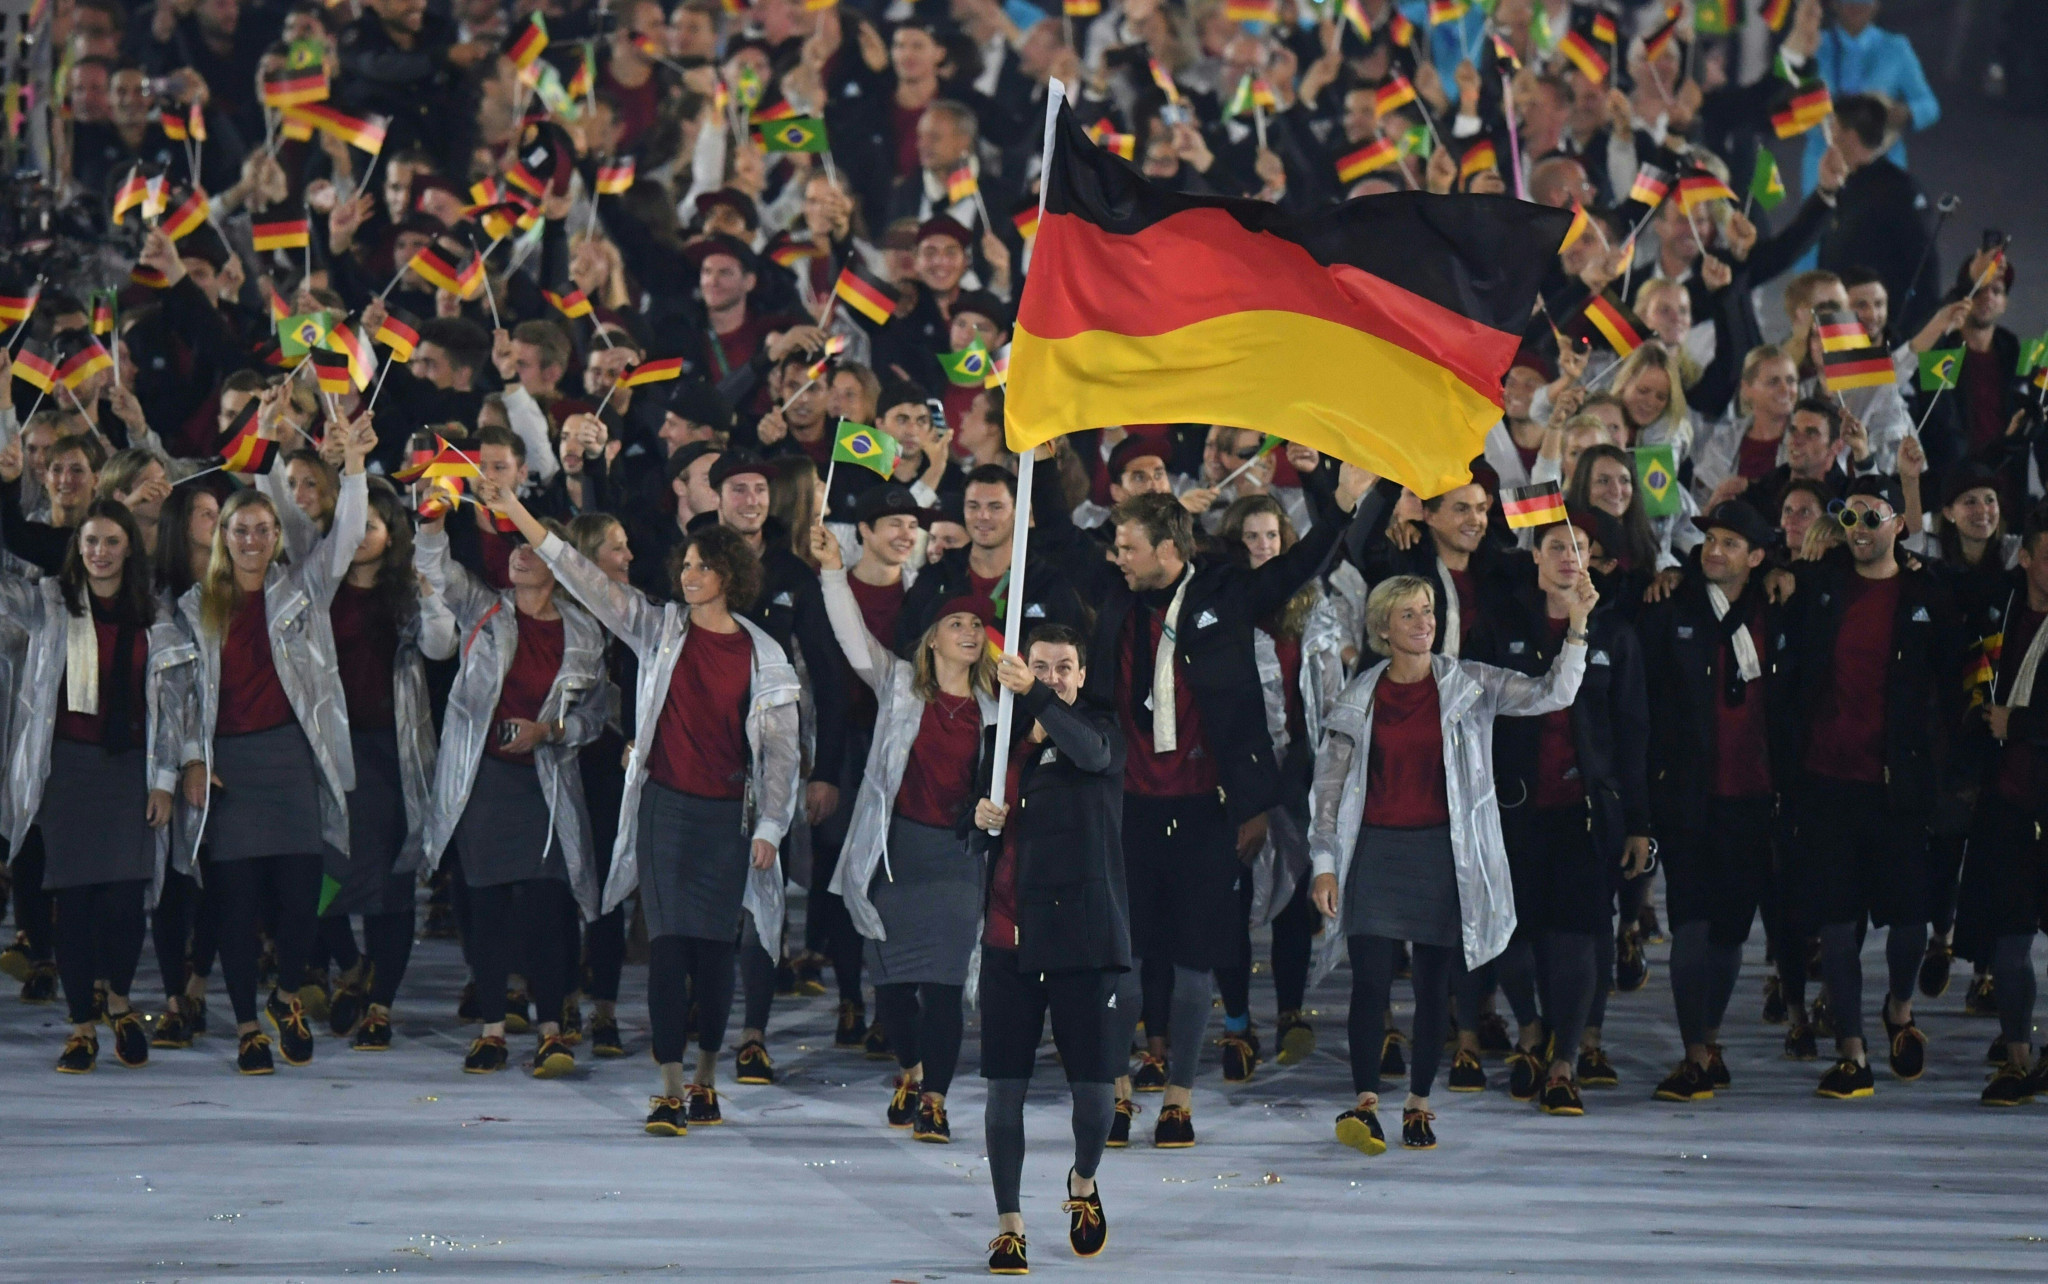 The change made by German athletes to its Rule 40 on personal advertising during the Games is not generally applicable, the IOC has stated ©Getty Images